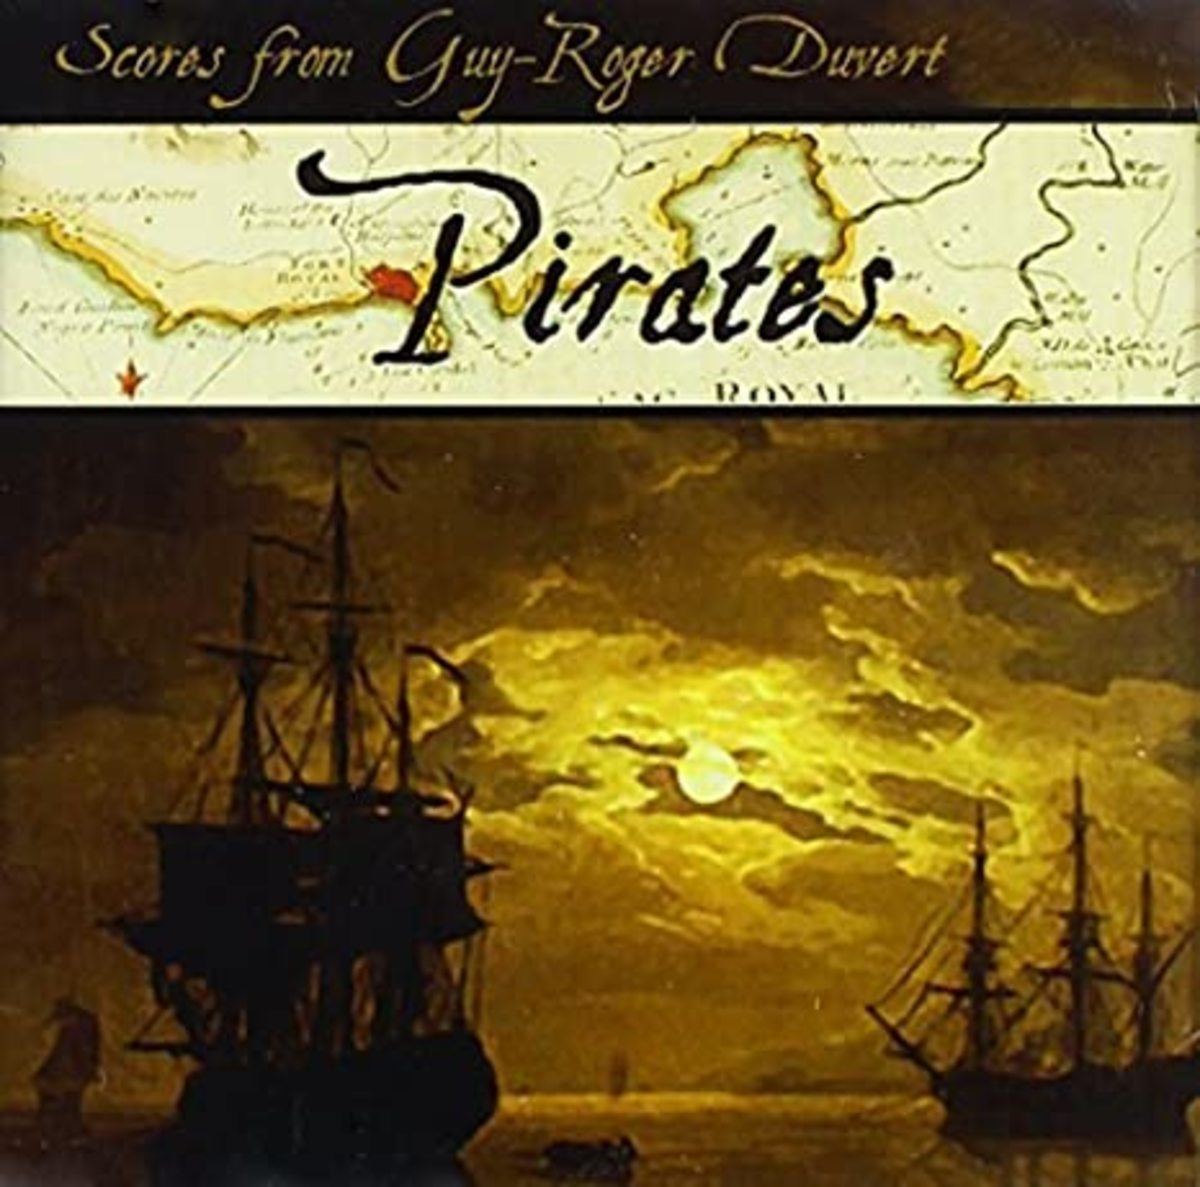 Pirates - by Guy-Roger Duvert